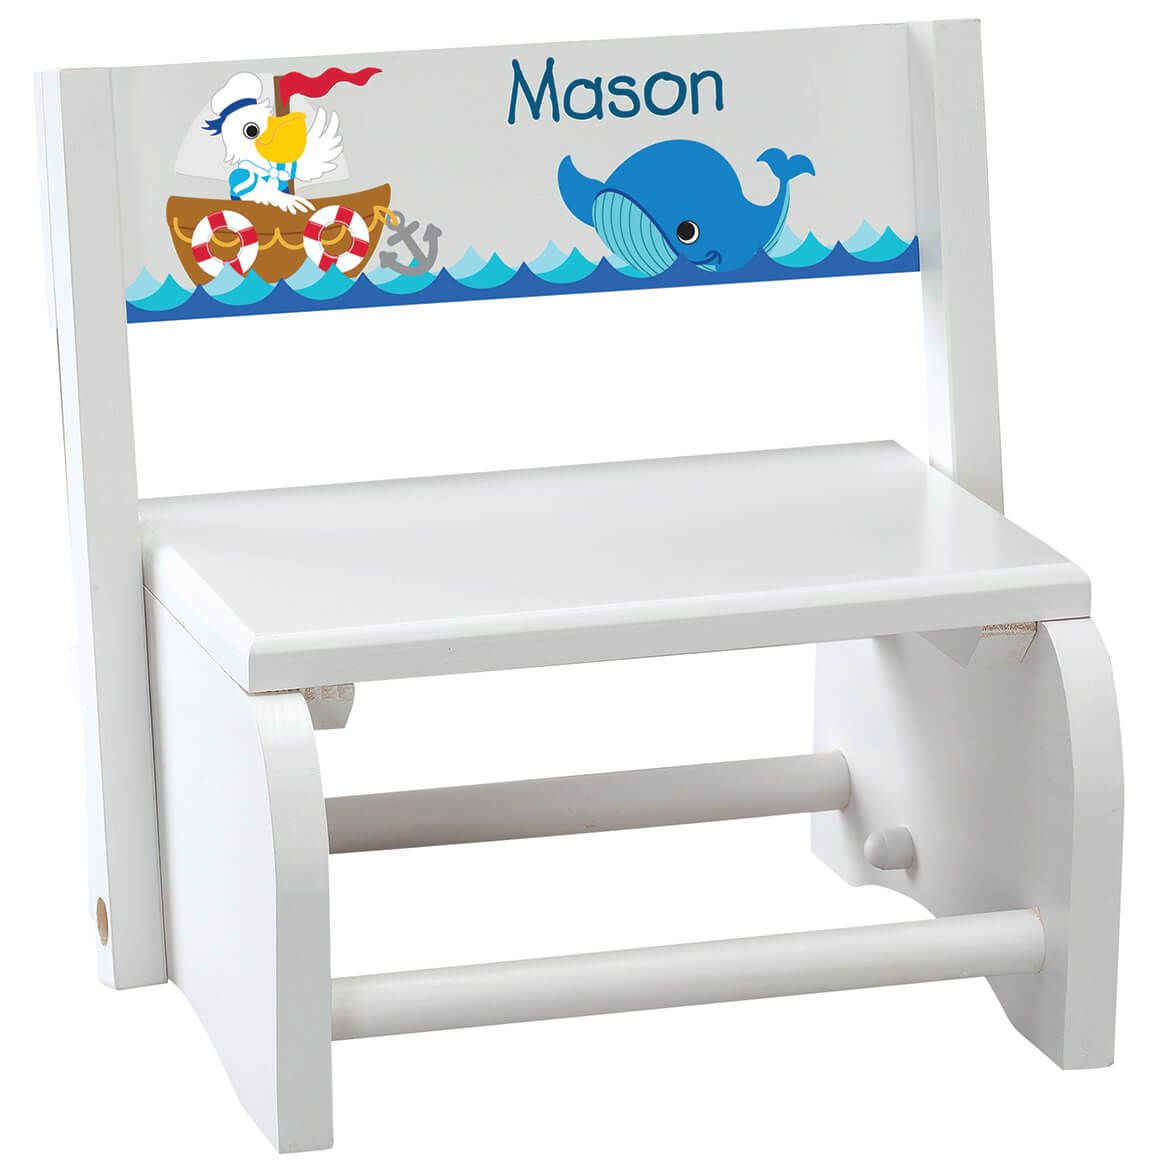 Personalized Children's White Ocean Friends Step Stool-368492